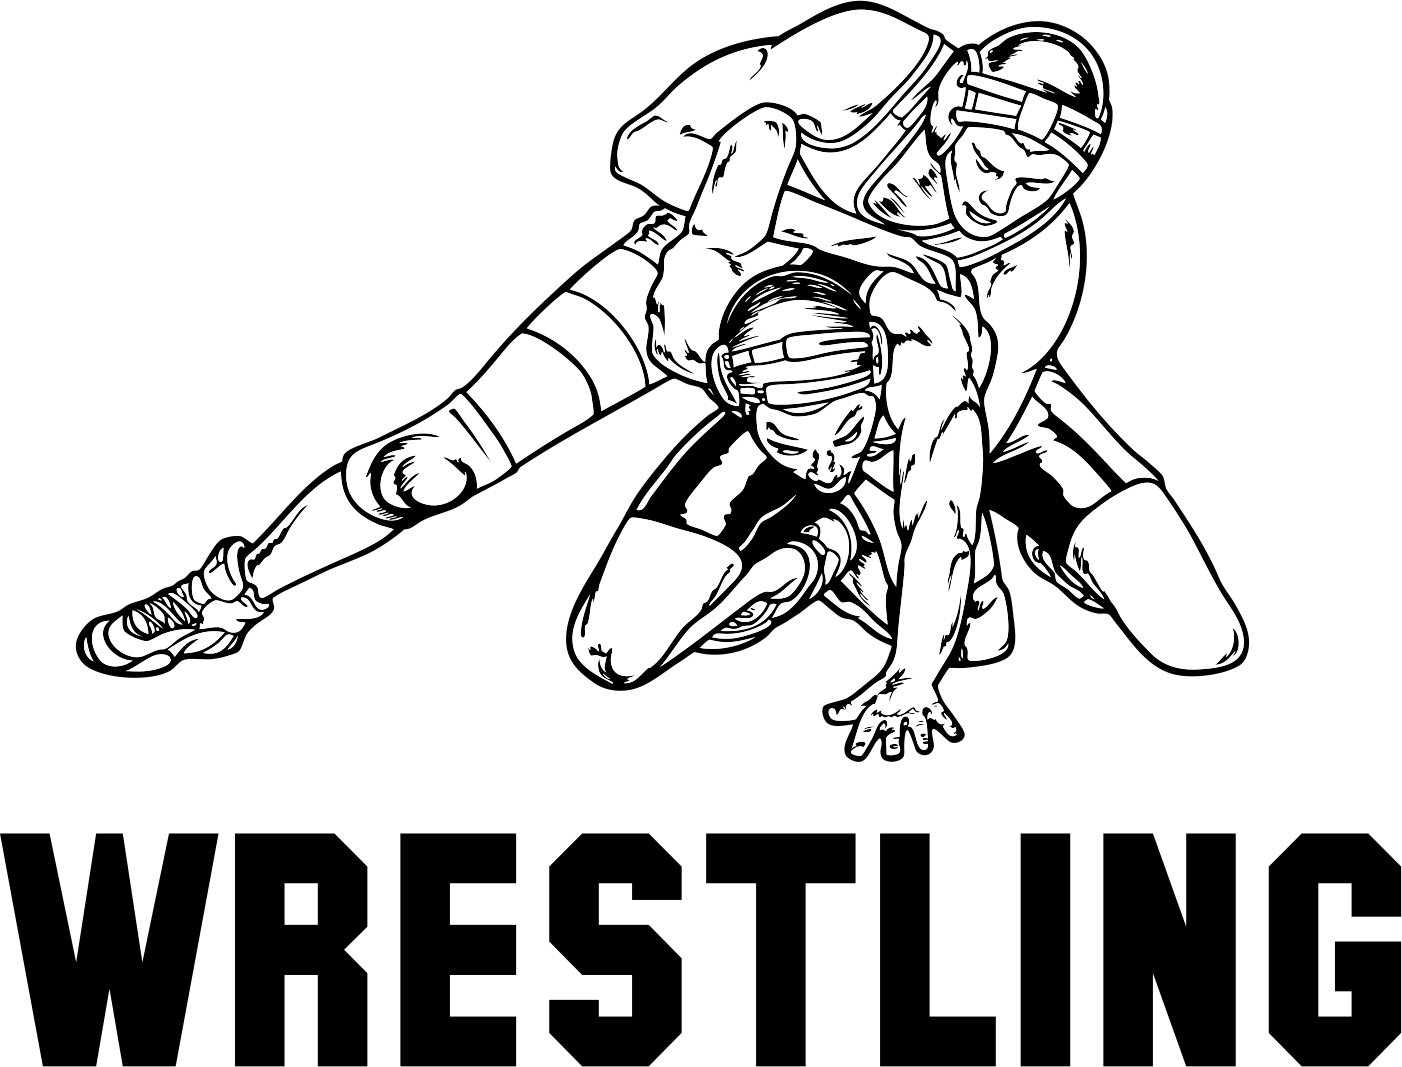 image free download Wrestler clipart high school wrestling.  collection of quality